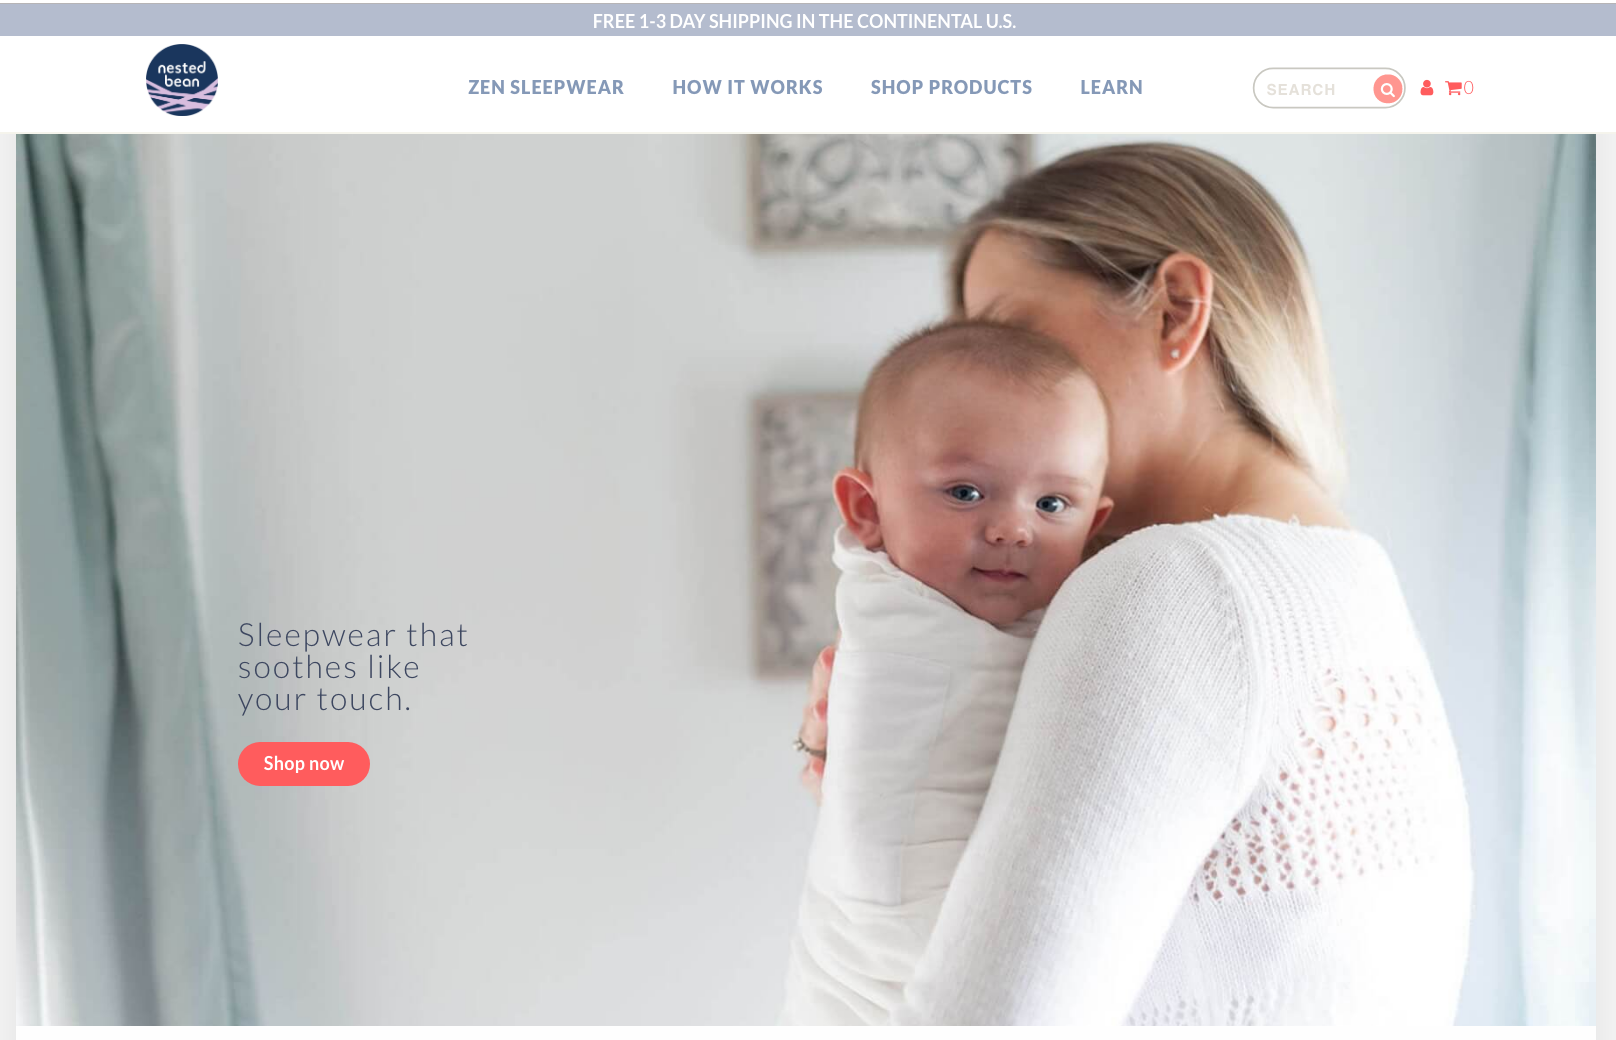 Nested Bean Soothes Sleepless Babies (and Parents) With a New, Easier-to-Use Shopify Site